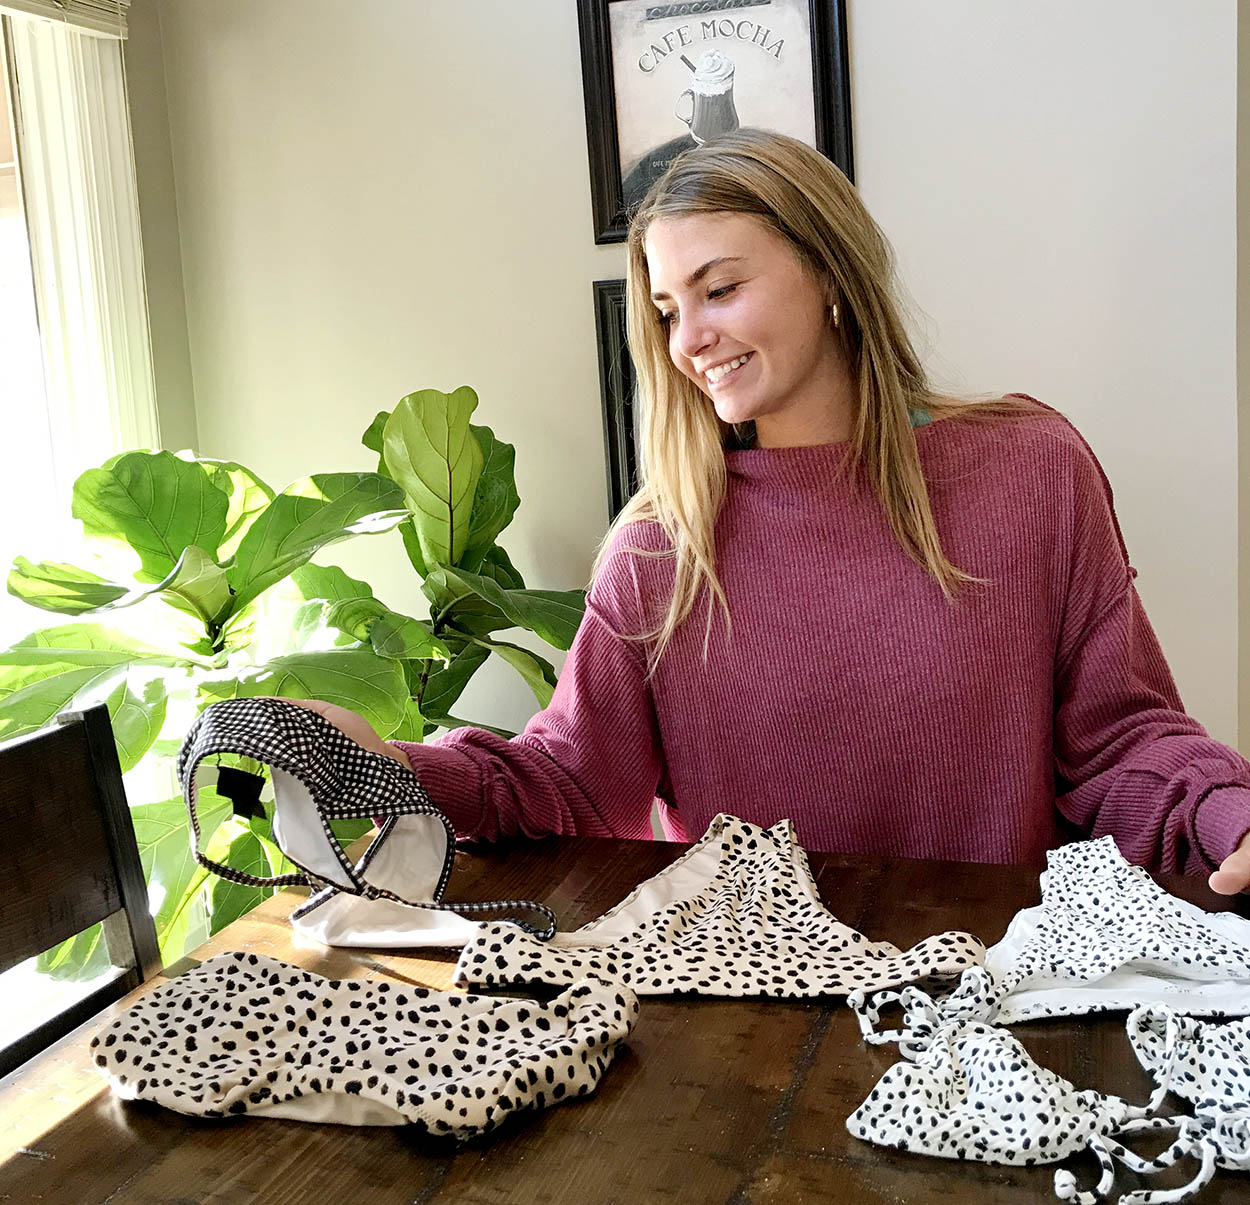 Emma Osowski, a senior from Omaha, won the Big Idea UNK competition with her plan to launch a line of tan-through swimwear. (Courtesy photo)